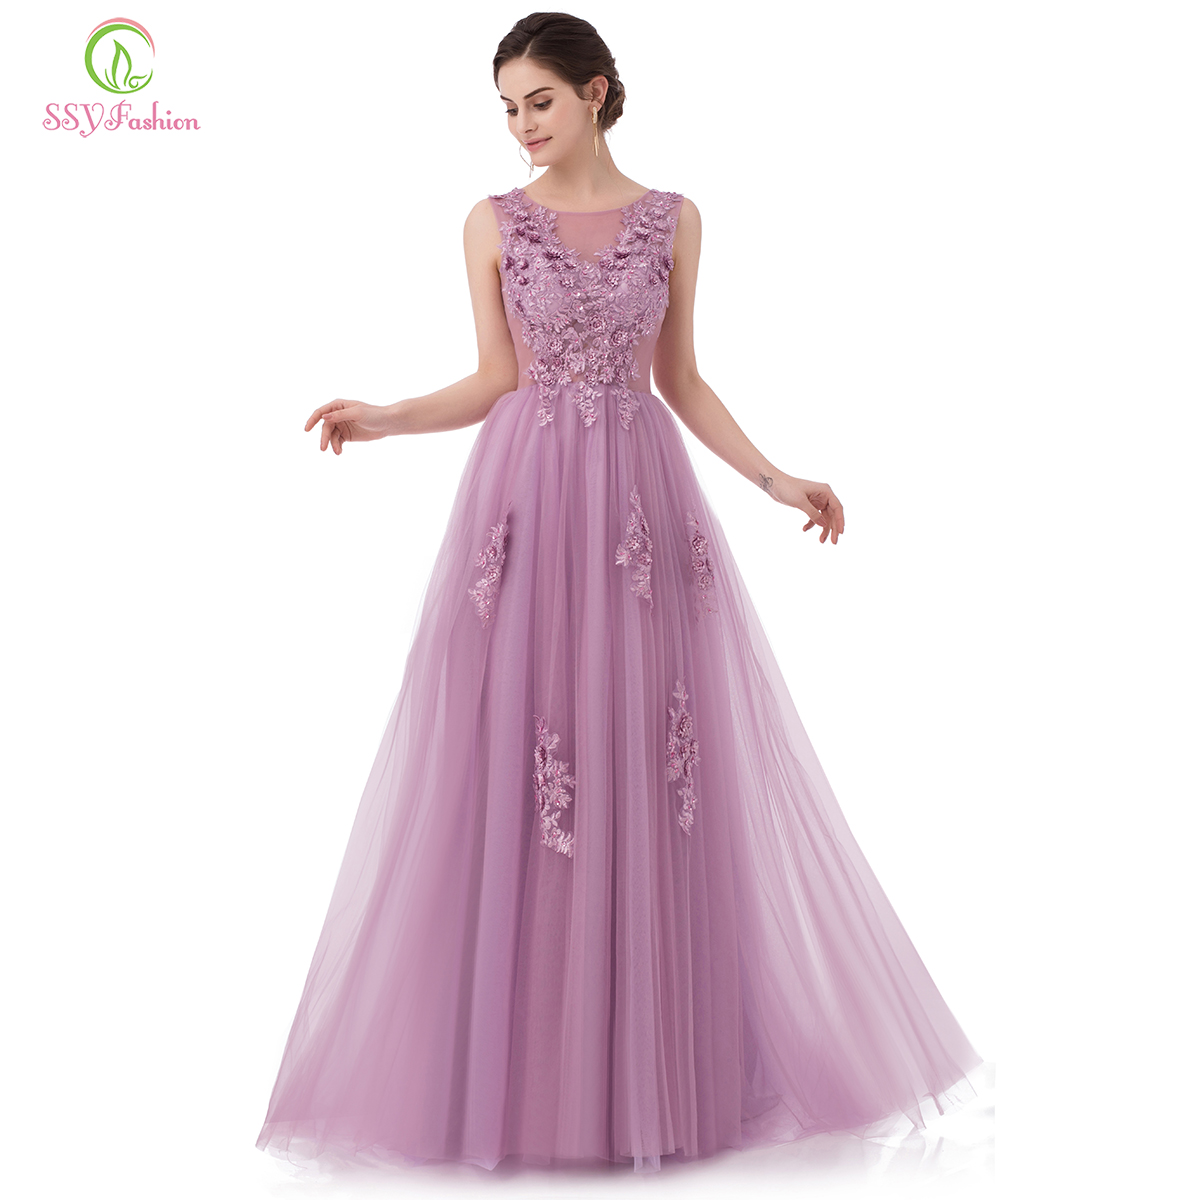 SSYFashion New Sweet Lace Evening Dress Purple Pink Appliques with Beading Sleeveless Floor length Long Prom